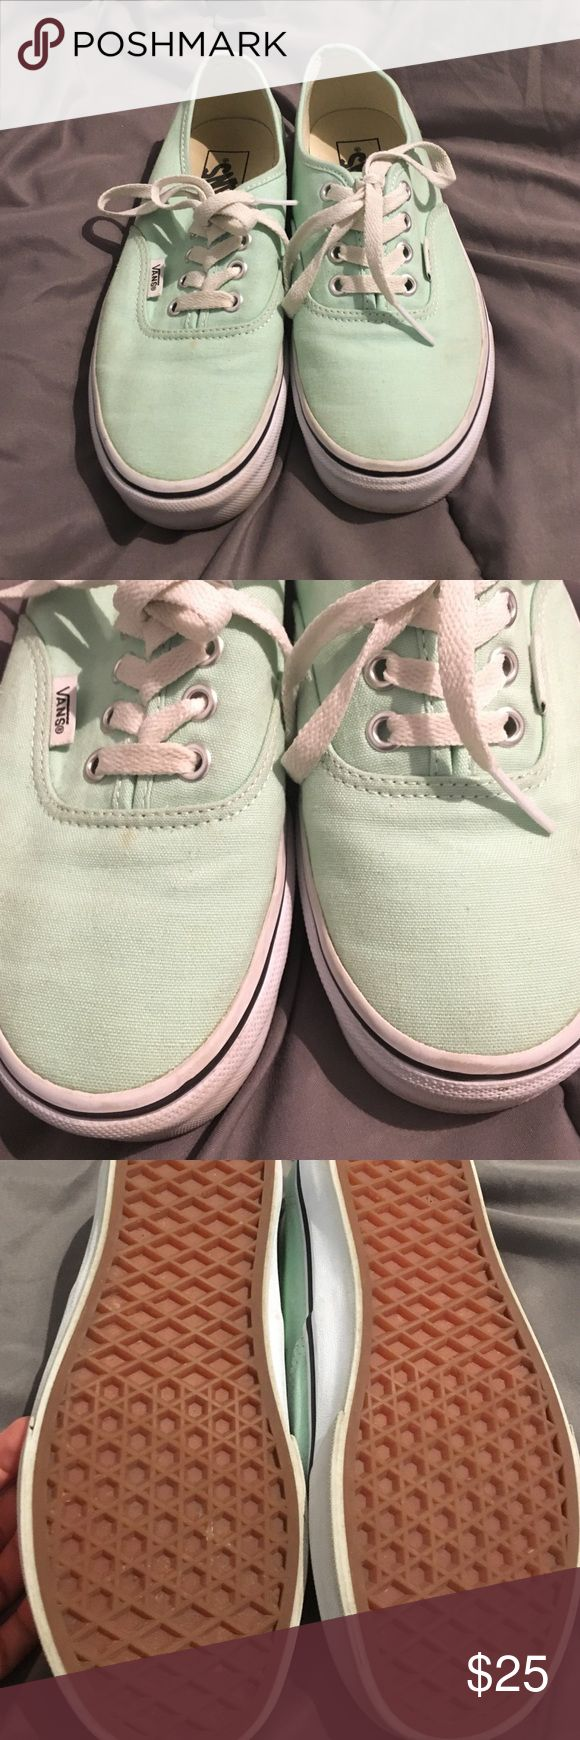 Mint Vans Size 6 Mint vans in women's size 6. Slightly worn. Please see pictures for any markings. Still in good condition. Vans Shoes Sneakers